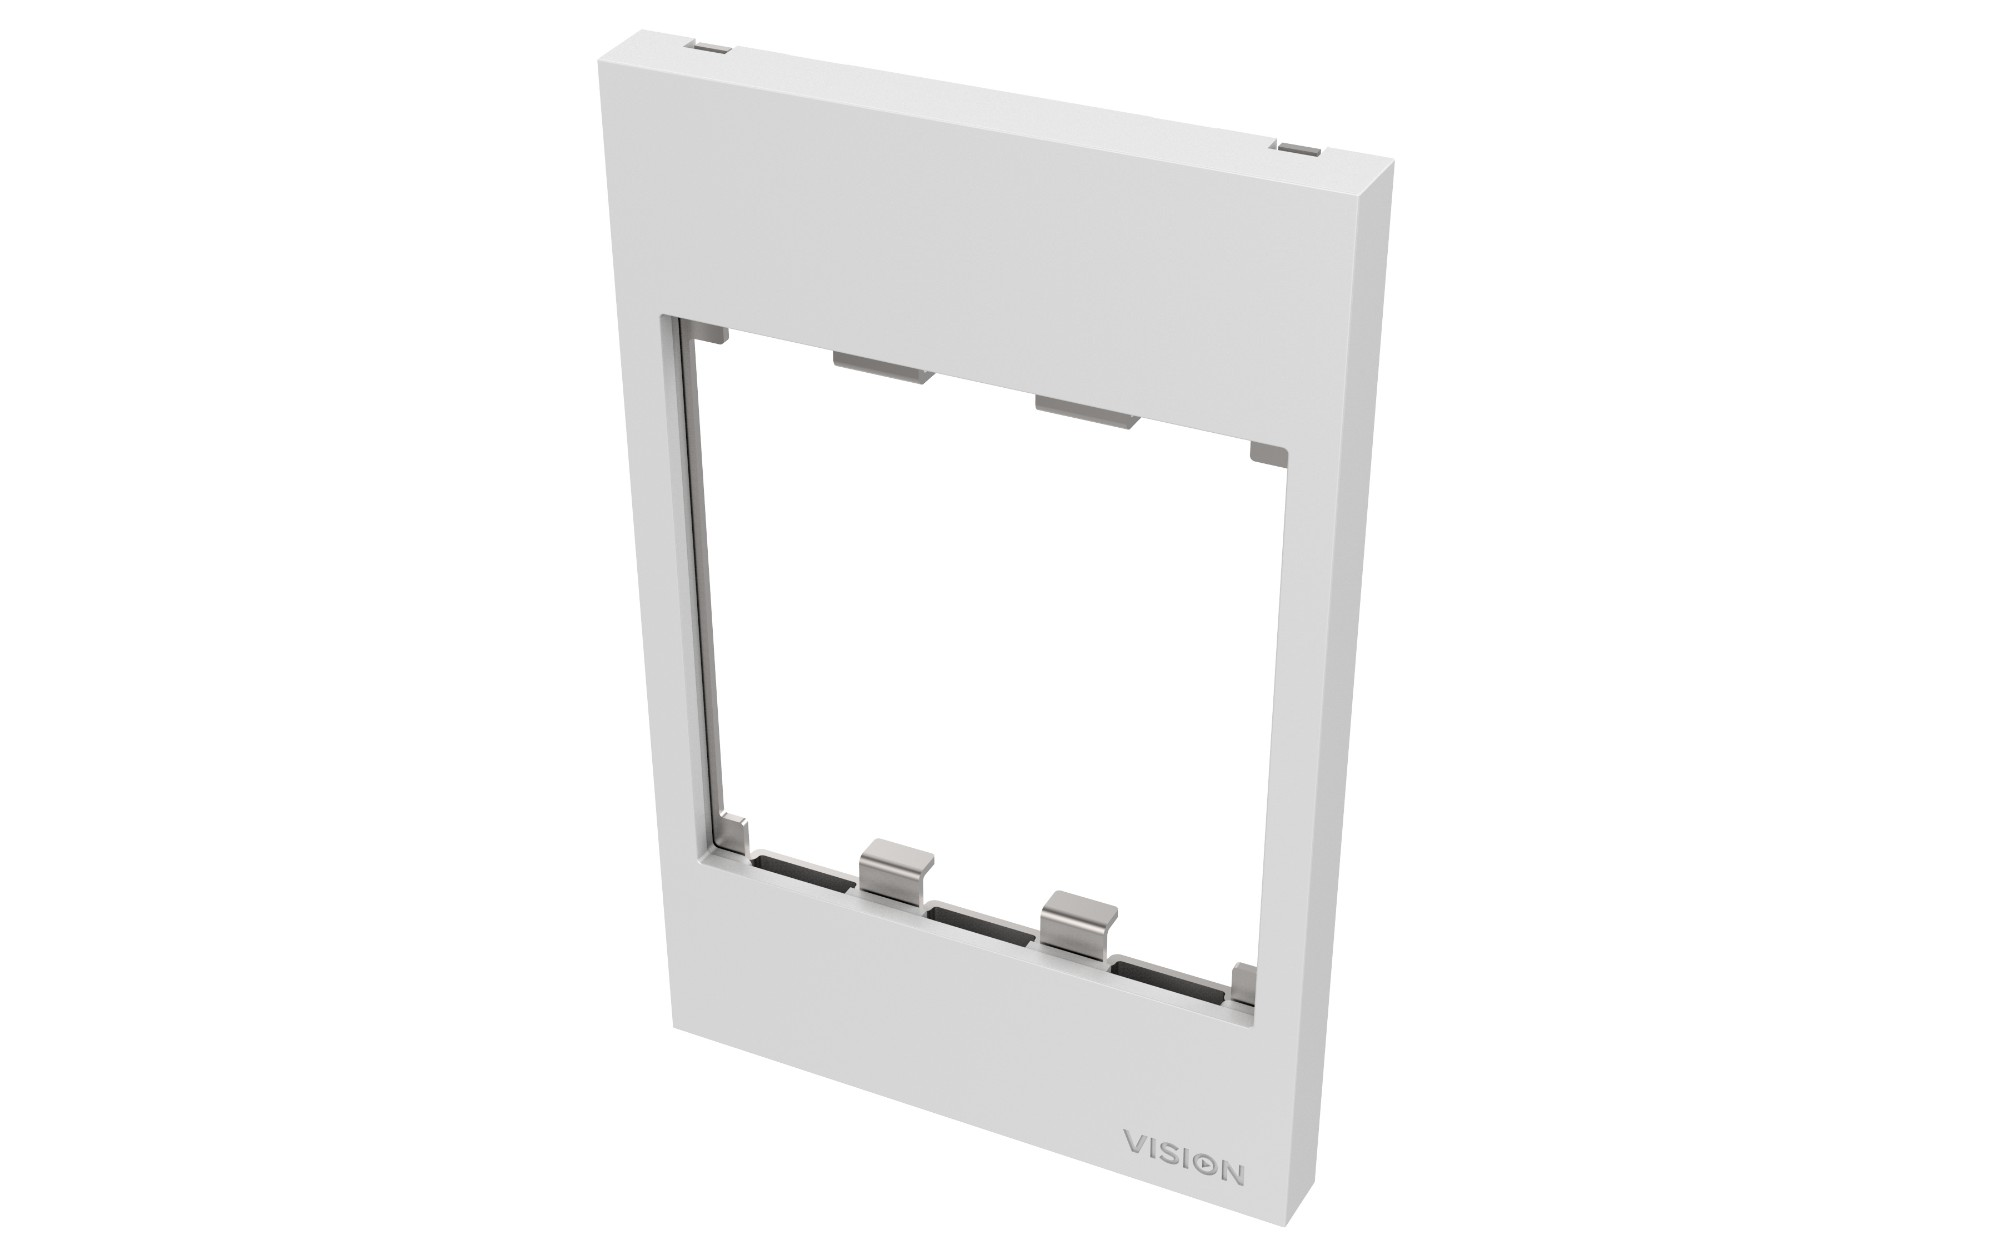 Vision TC3 SURRAU3M White switch plate/outlet cover